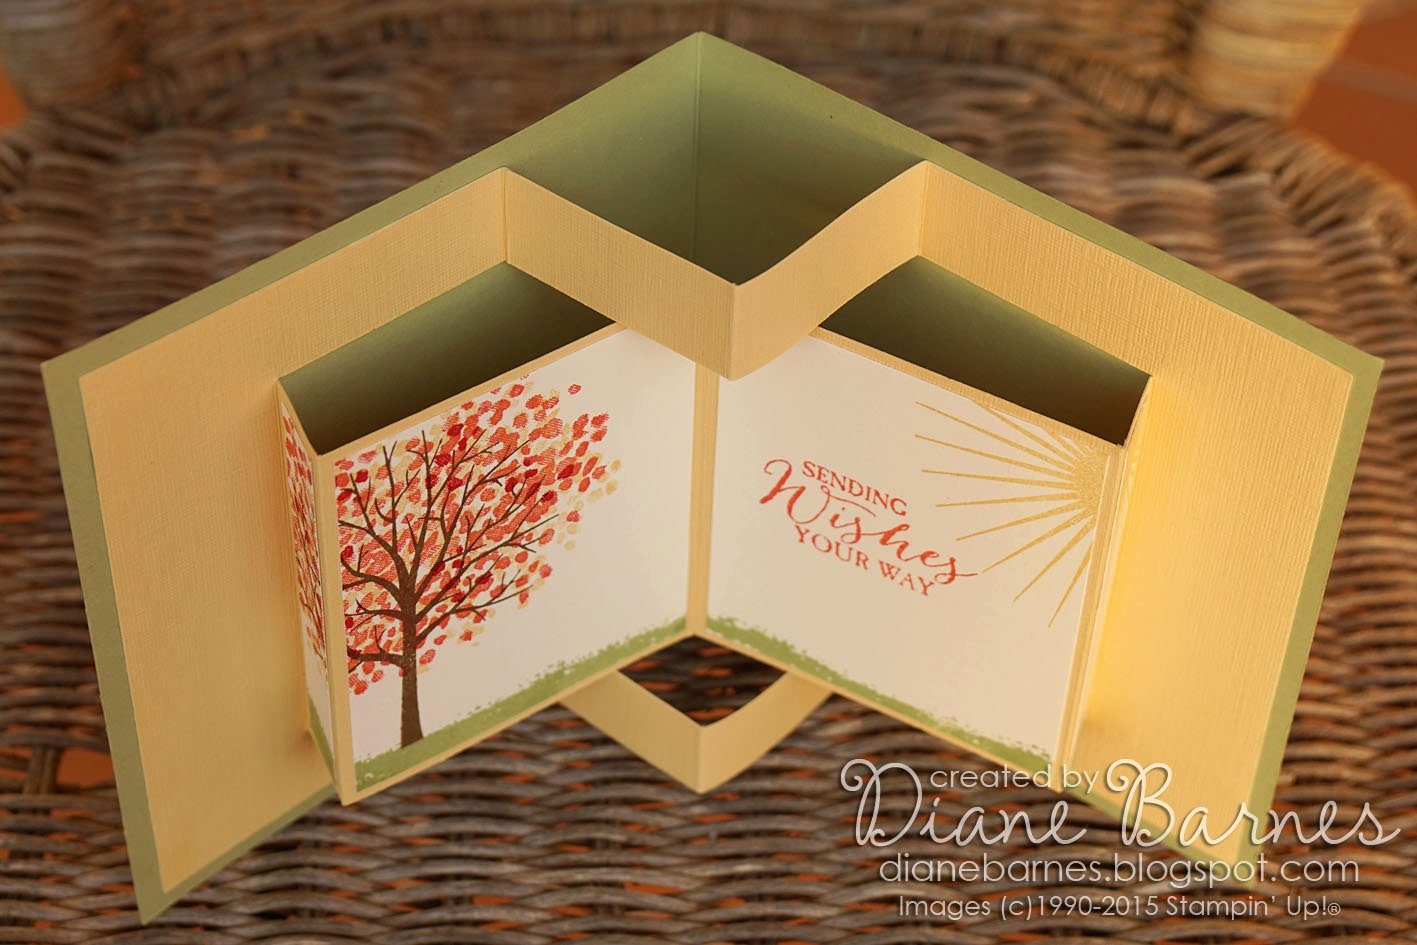 Pop Up Book Template Luxury Colour Me Happy Sheltering Tree Pop Up Book Card & Template